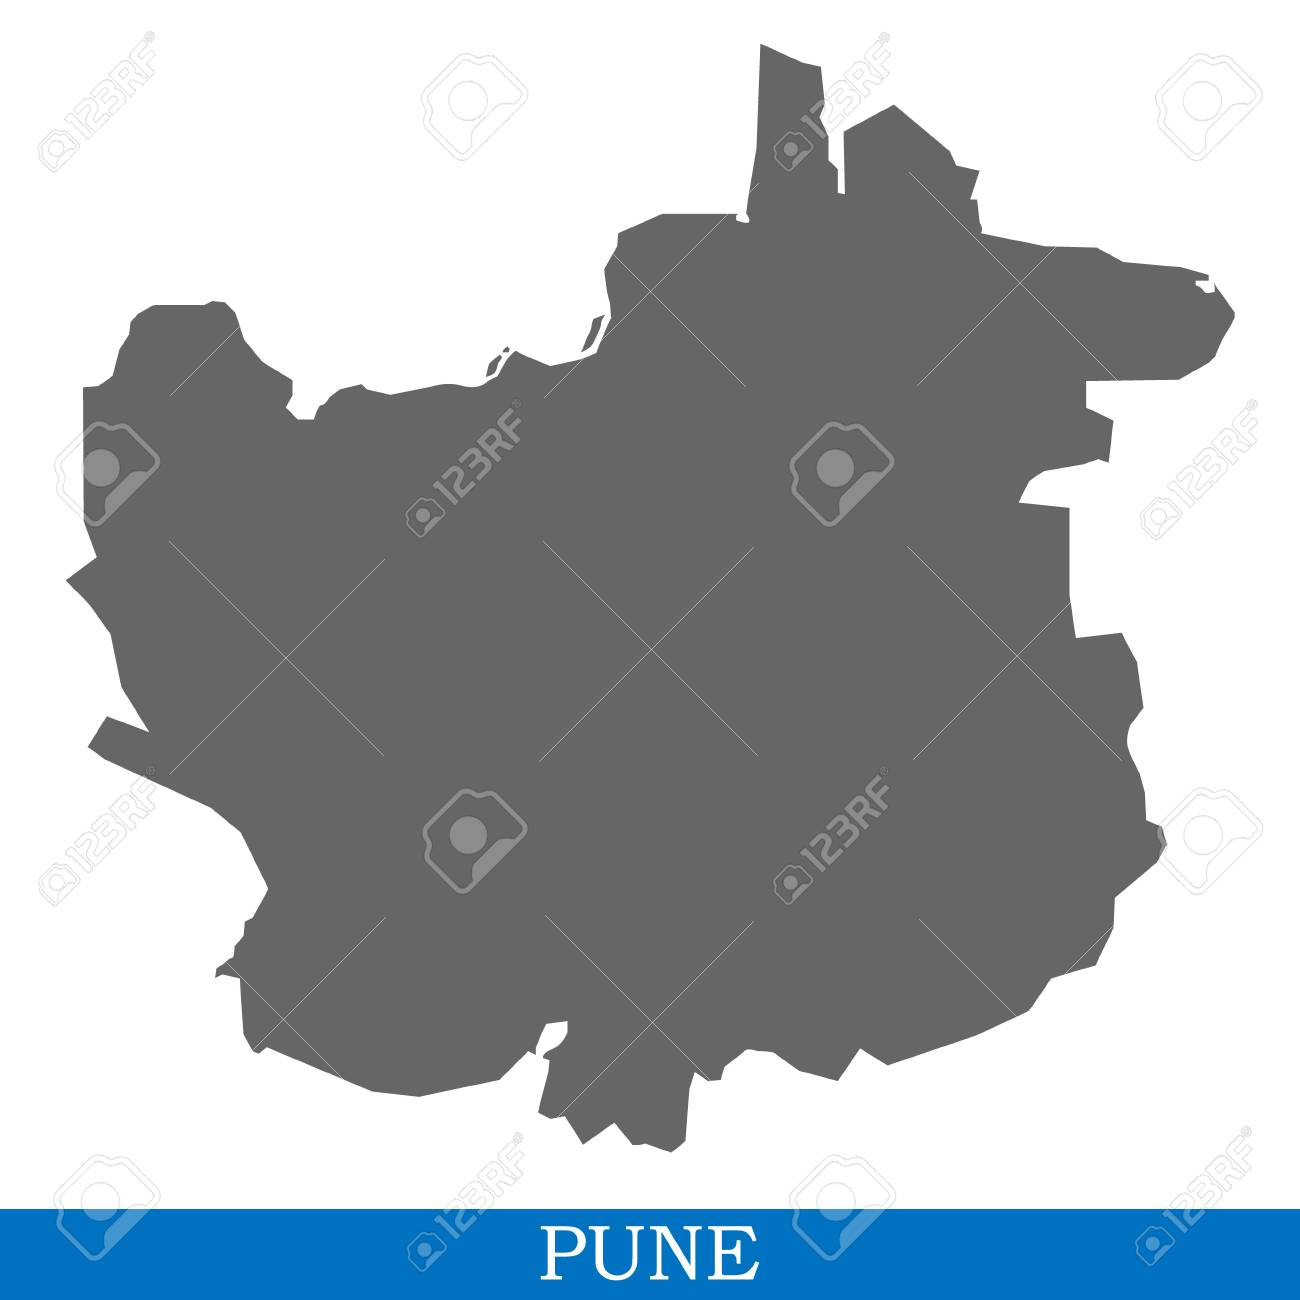 High Quality map of Pune is a city of India, with borders of.. on map of nainital india, map of kolhapur india, map of shimoga india, map of meghalaya india, map of warangal india, map of bay of bengal india, map of rajkot india, map of agra india, map of hardoi india, map of kutch india, map of kollam india, map of kerala india, map of akola india, map of guntur india, map of mumbai india, map of chennai india, map of daman india, map of gorakhpur india, map of nellore india, map of kanpur india,